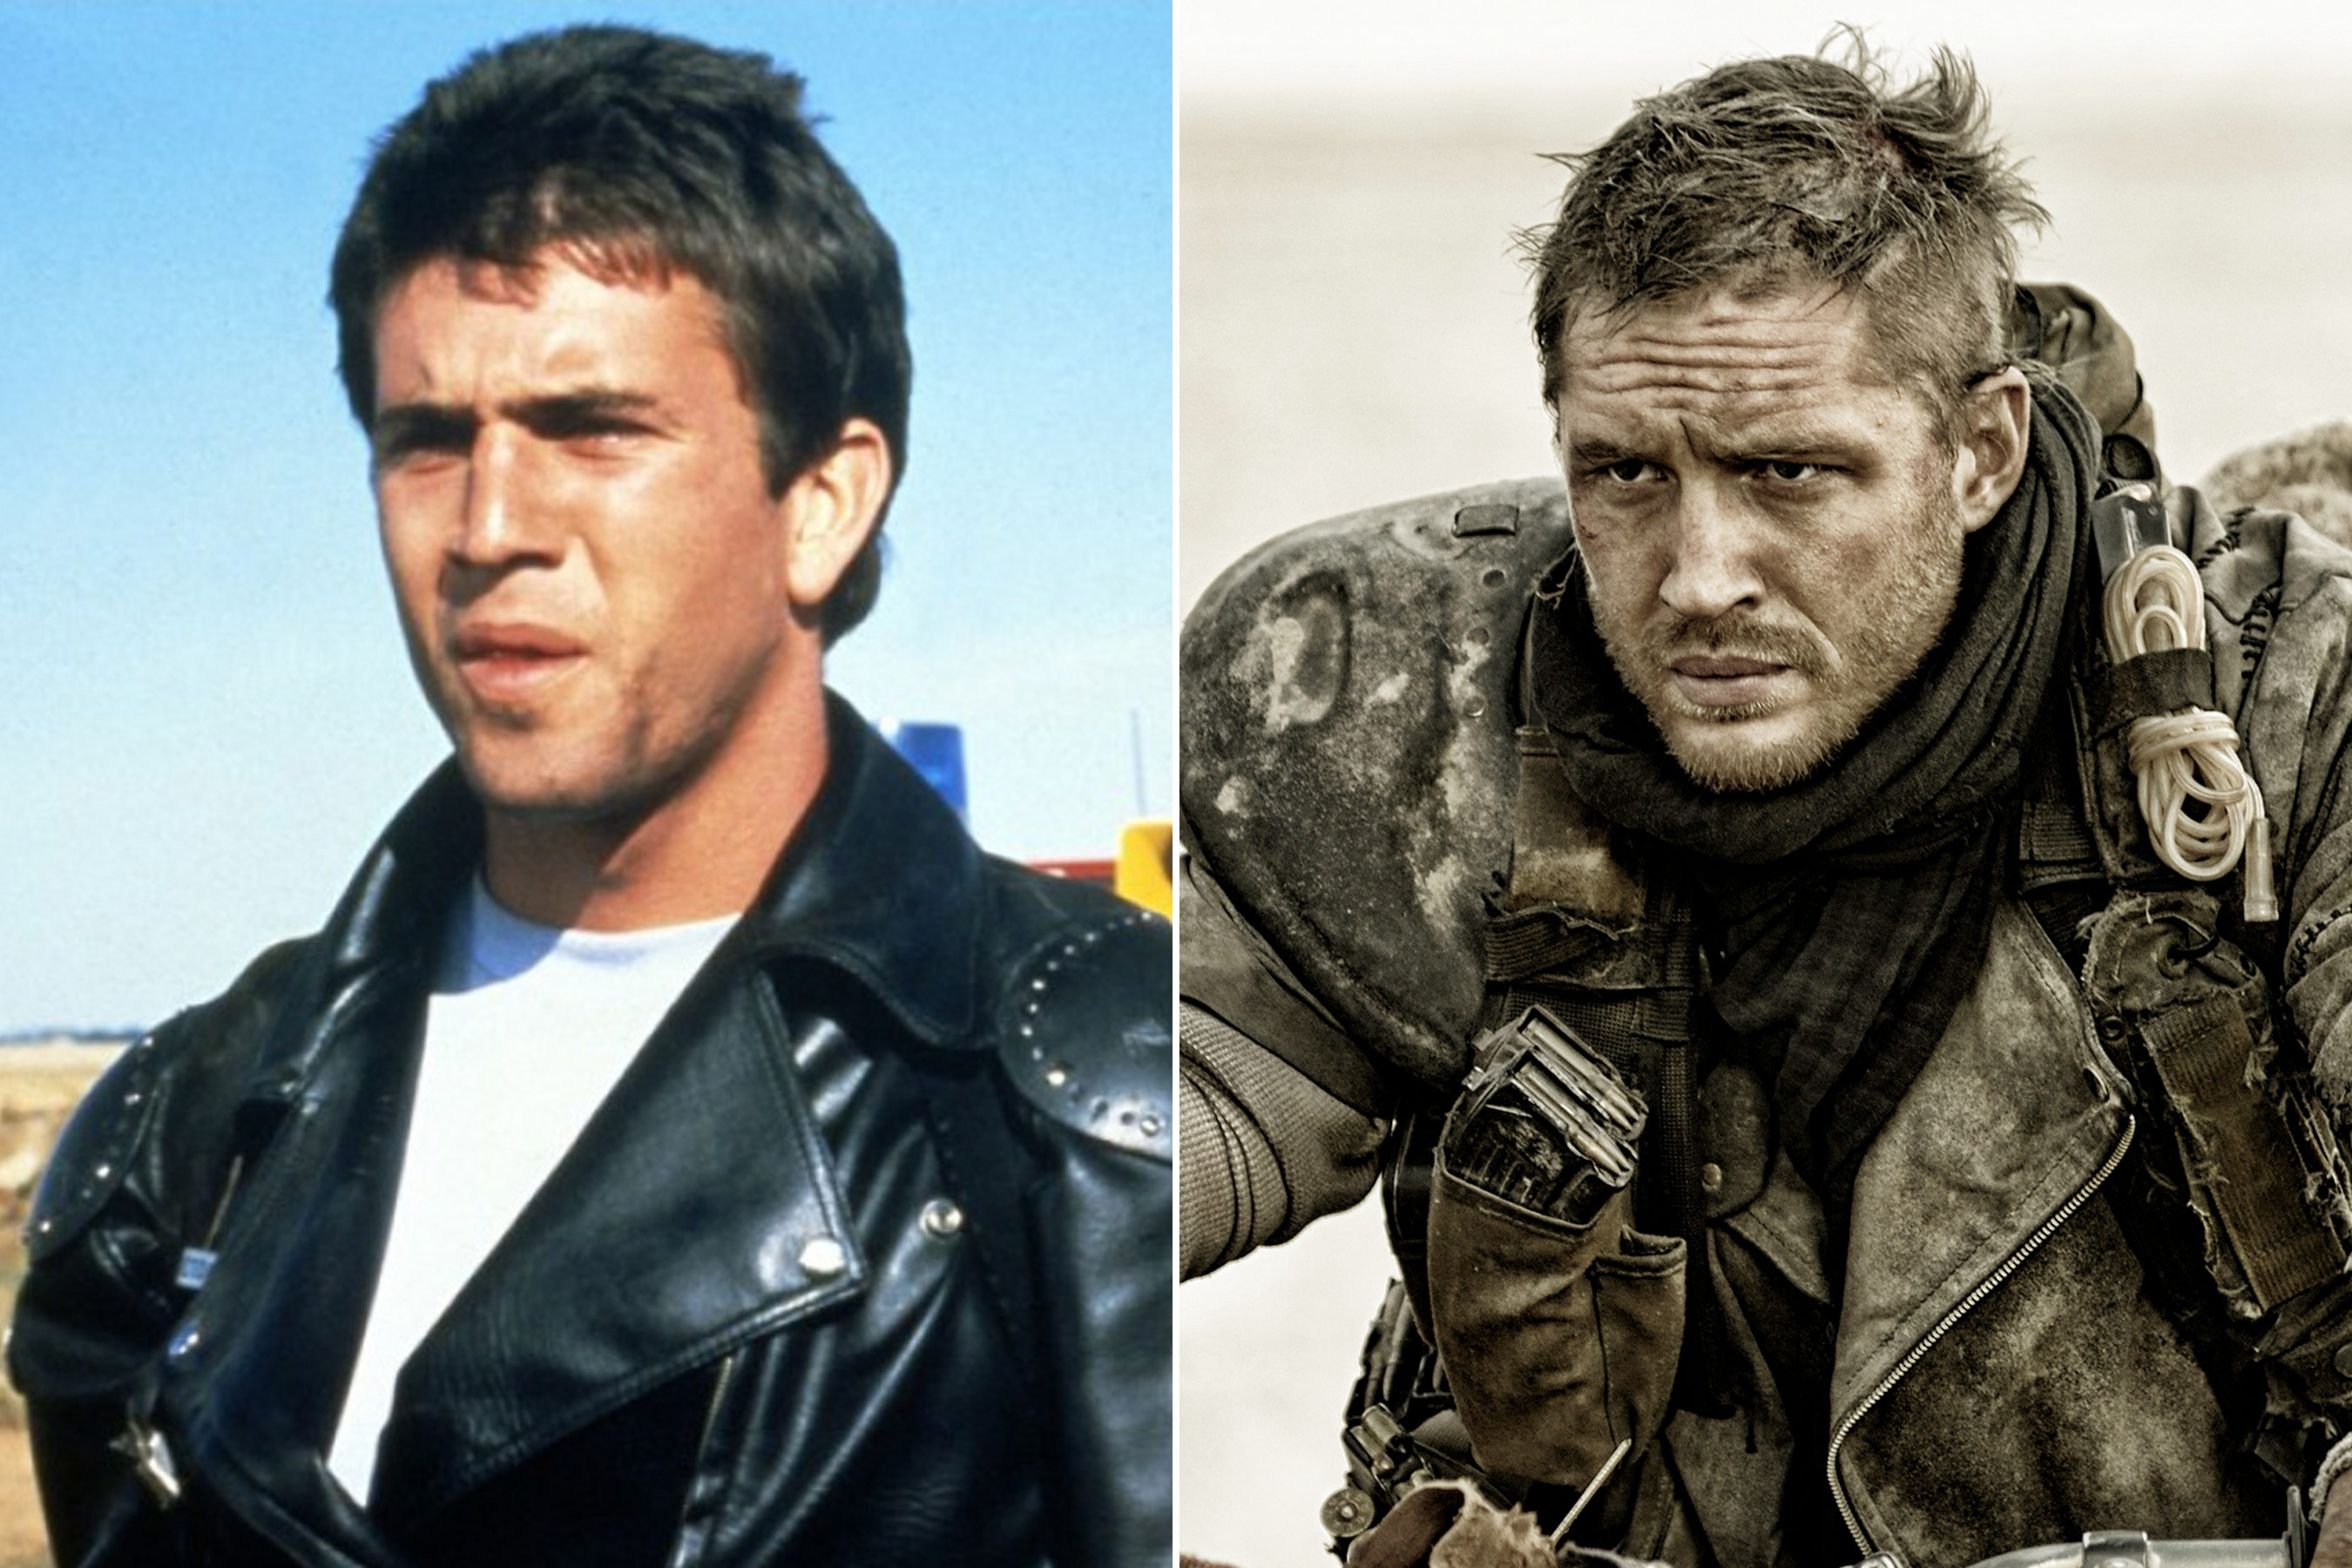 The original <i>Mad Max</i>, directed by George Miller, came out in 1979 with Mel Gibson starring as the titular character. Now, the 2015 reboot brings us back to the post-apocalyptic landscape with Tom Hardy as Max.